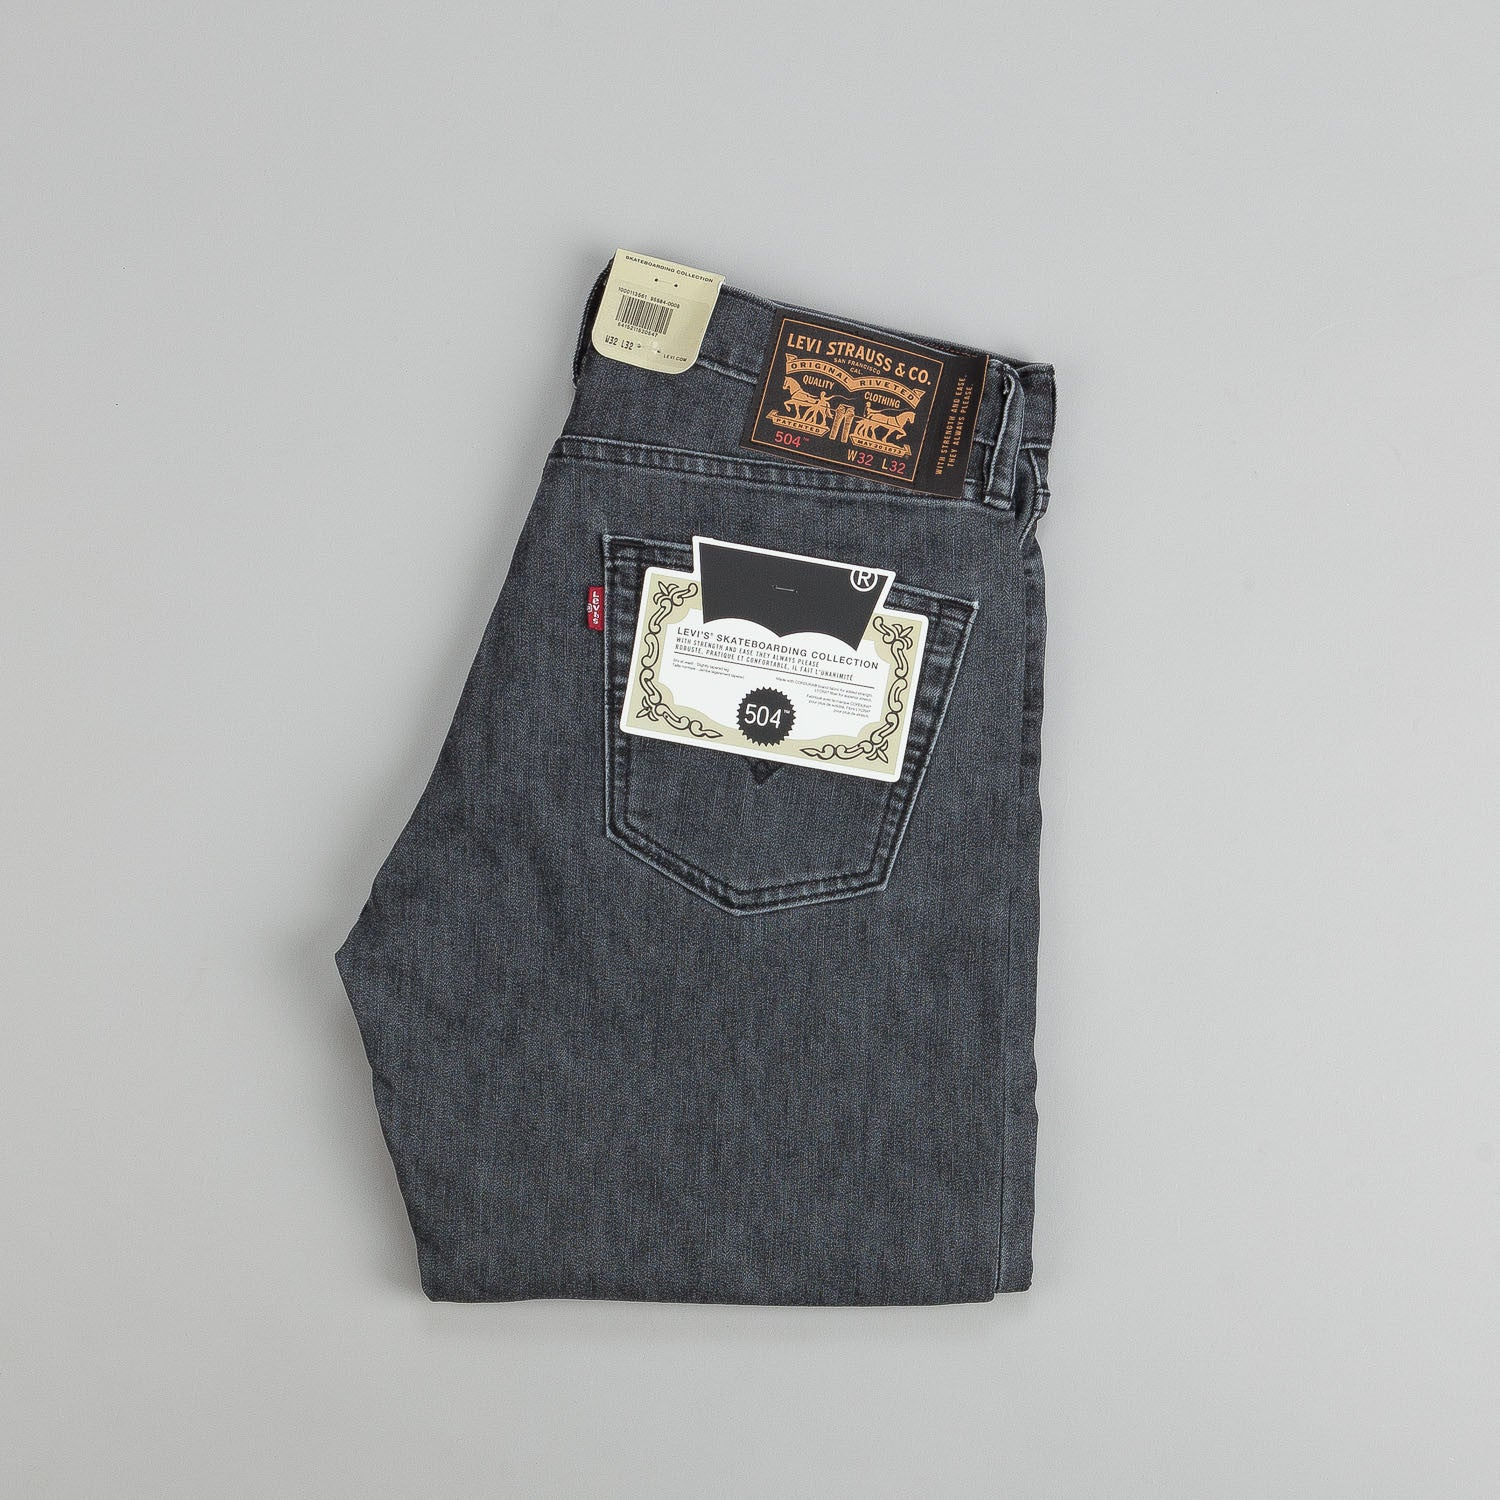 Levi's® Skate 504 Straight Jeans Geary